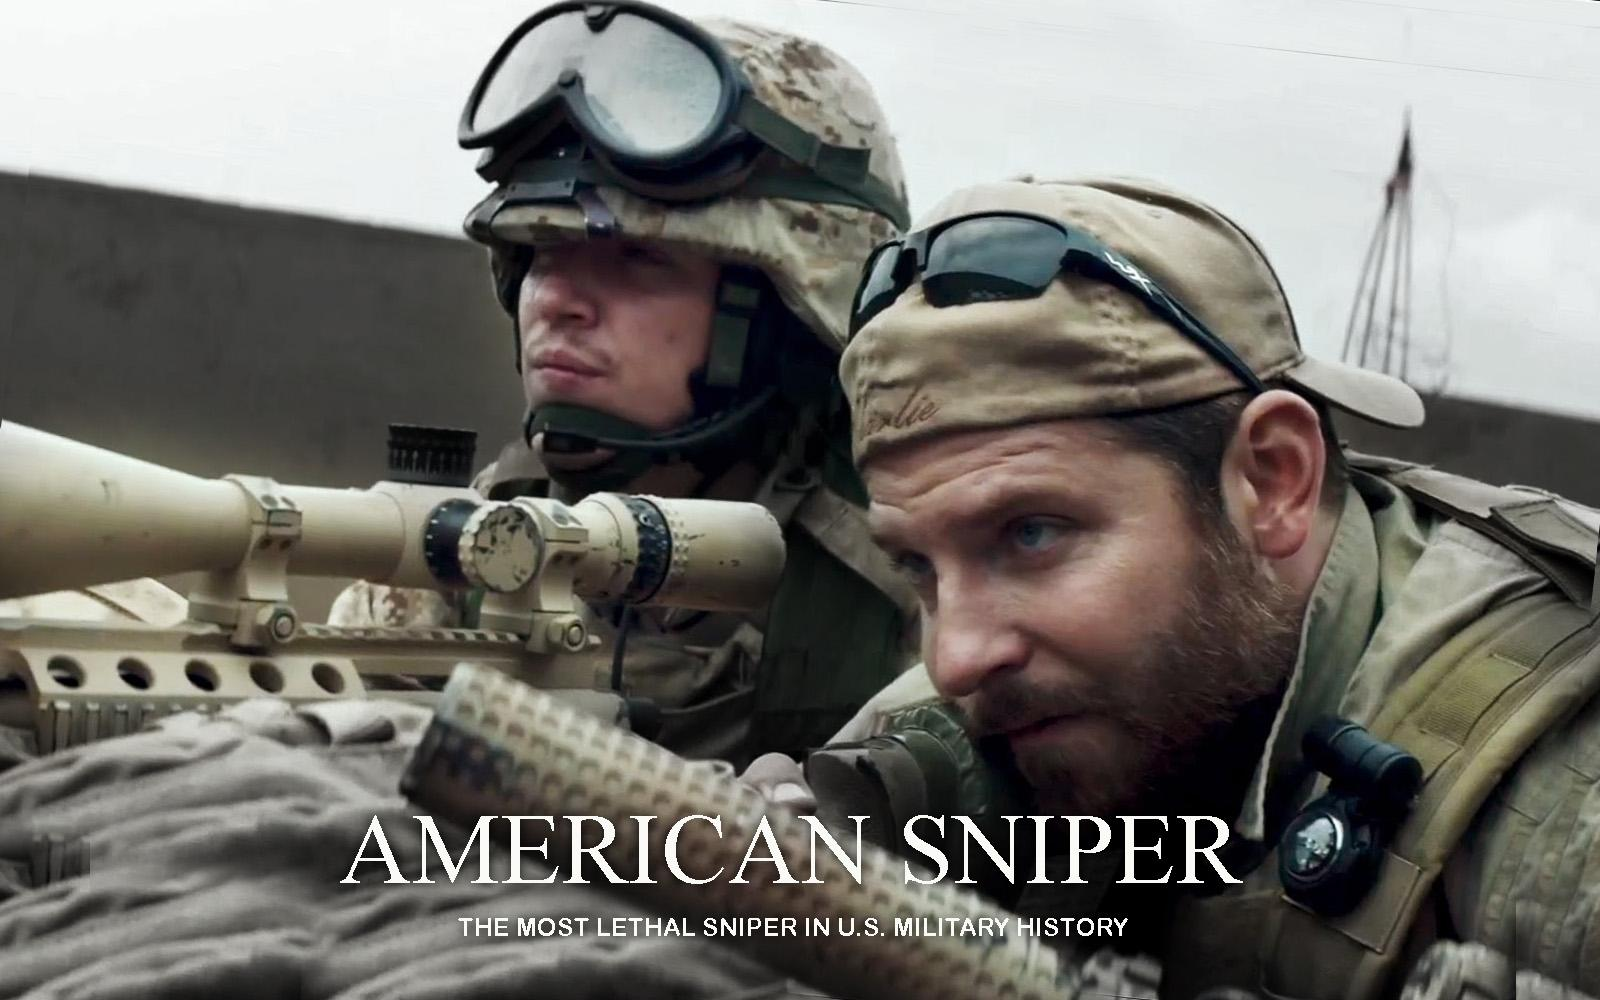 the sniper essay doorway the sniper analysis essay